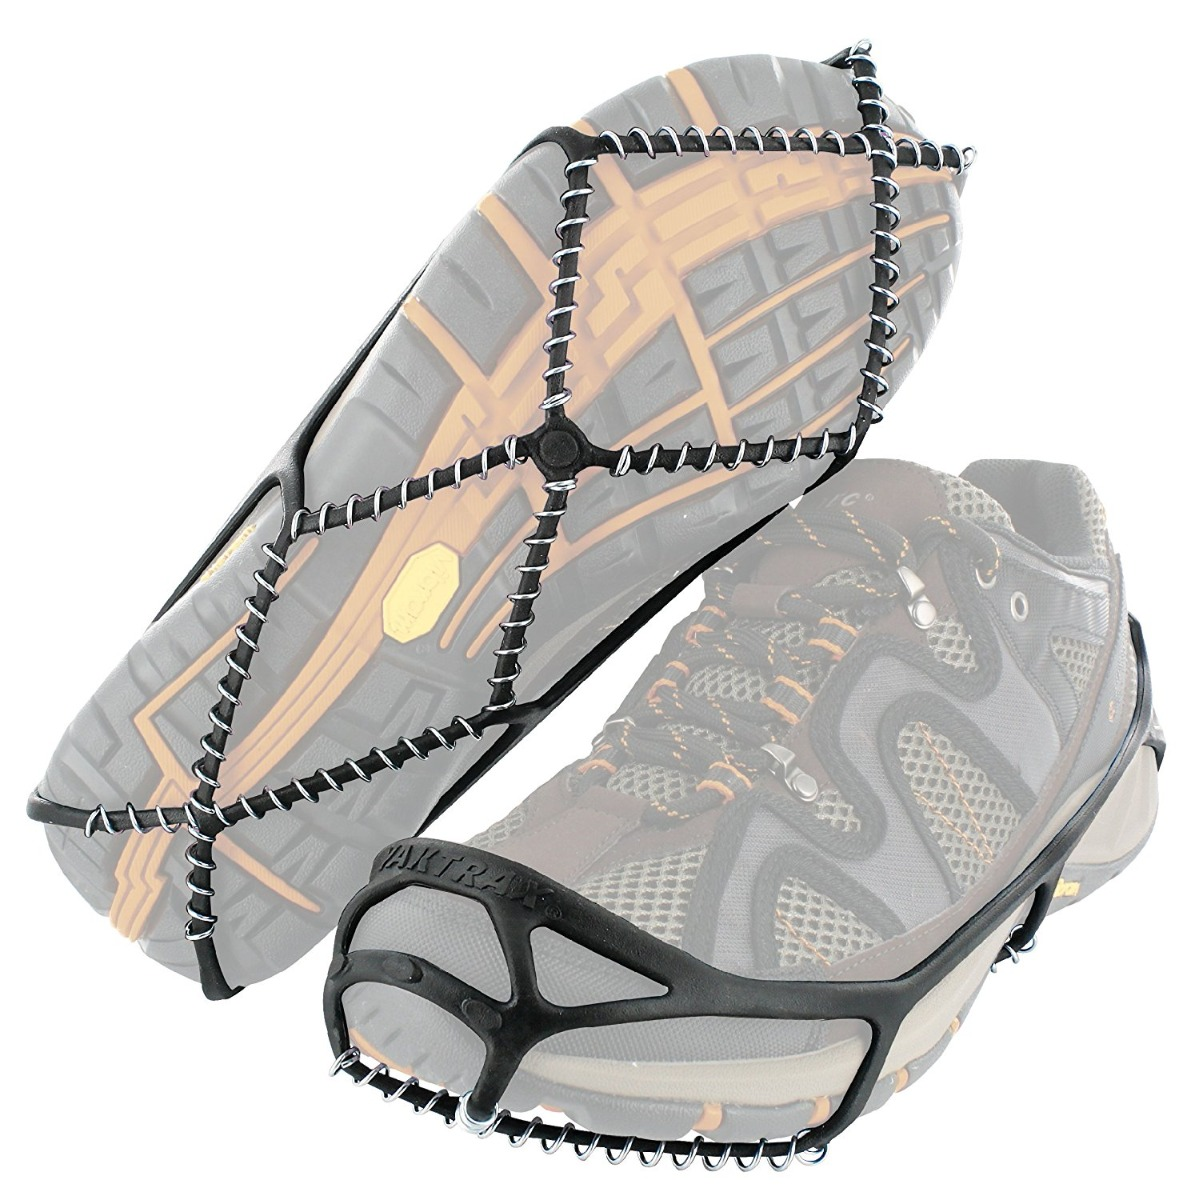 Walk Traction Cleats for Walking on Snow and Ice